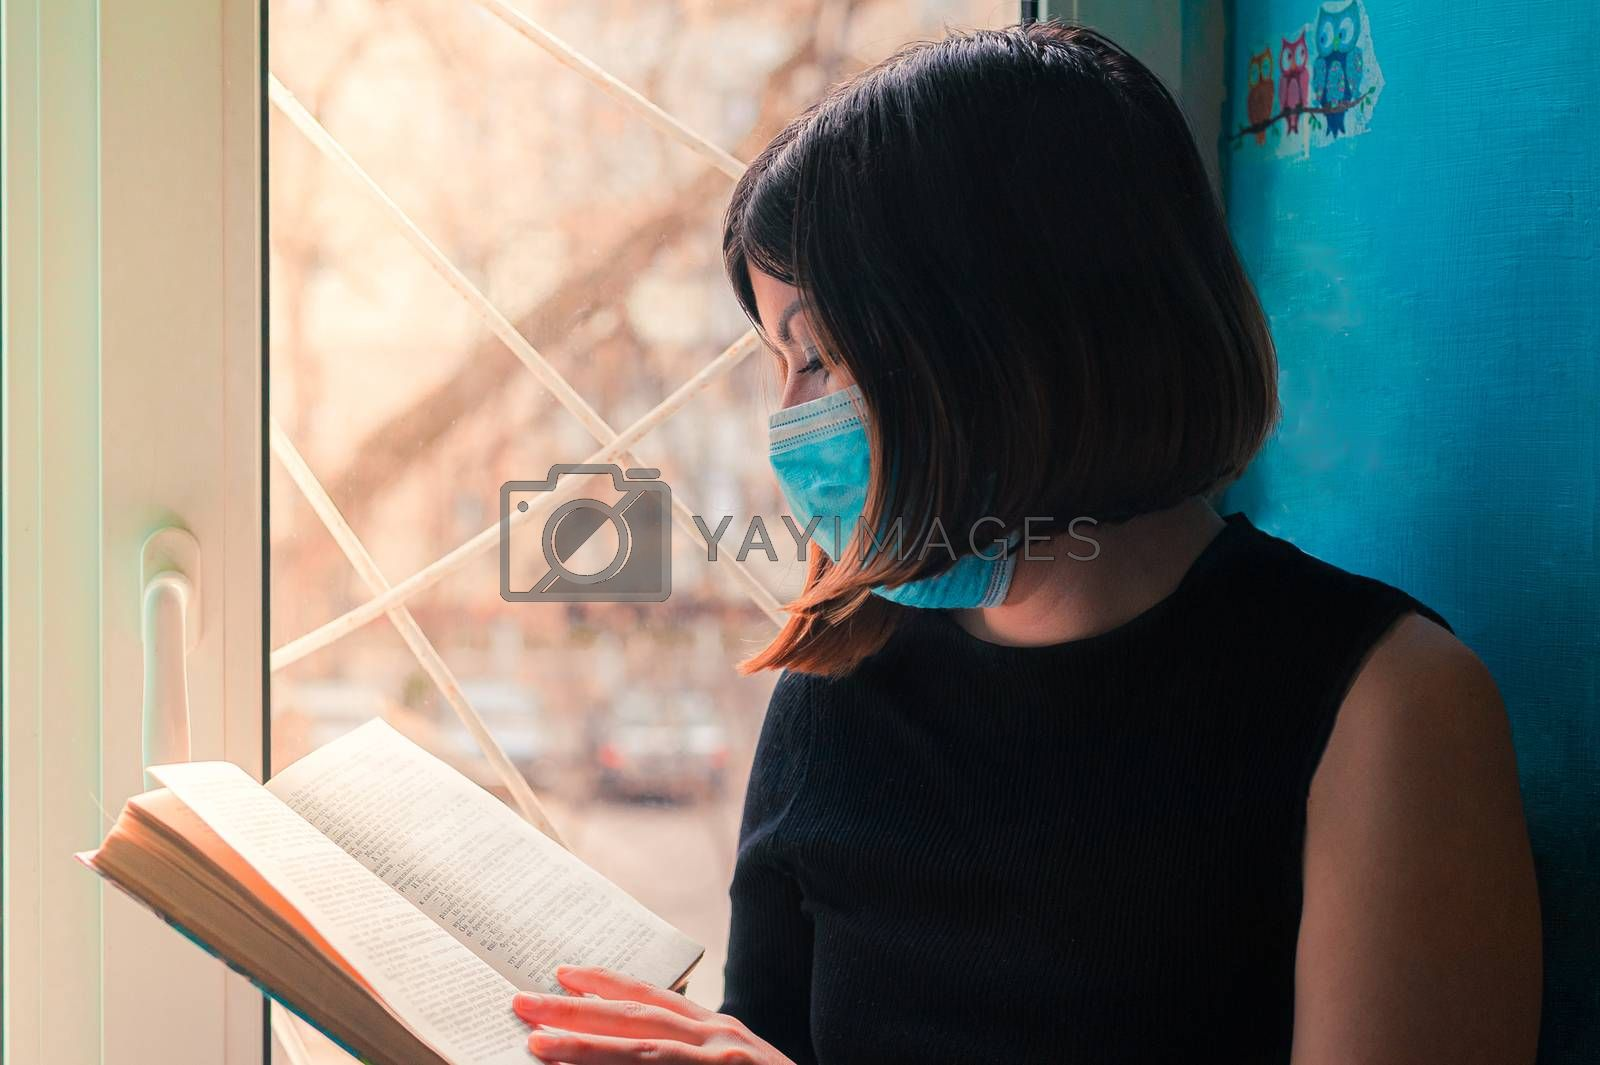 a dark-haired girl in a black dress sits in a surgical mask at the hospital window and reads a book